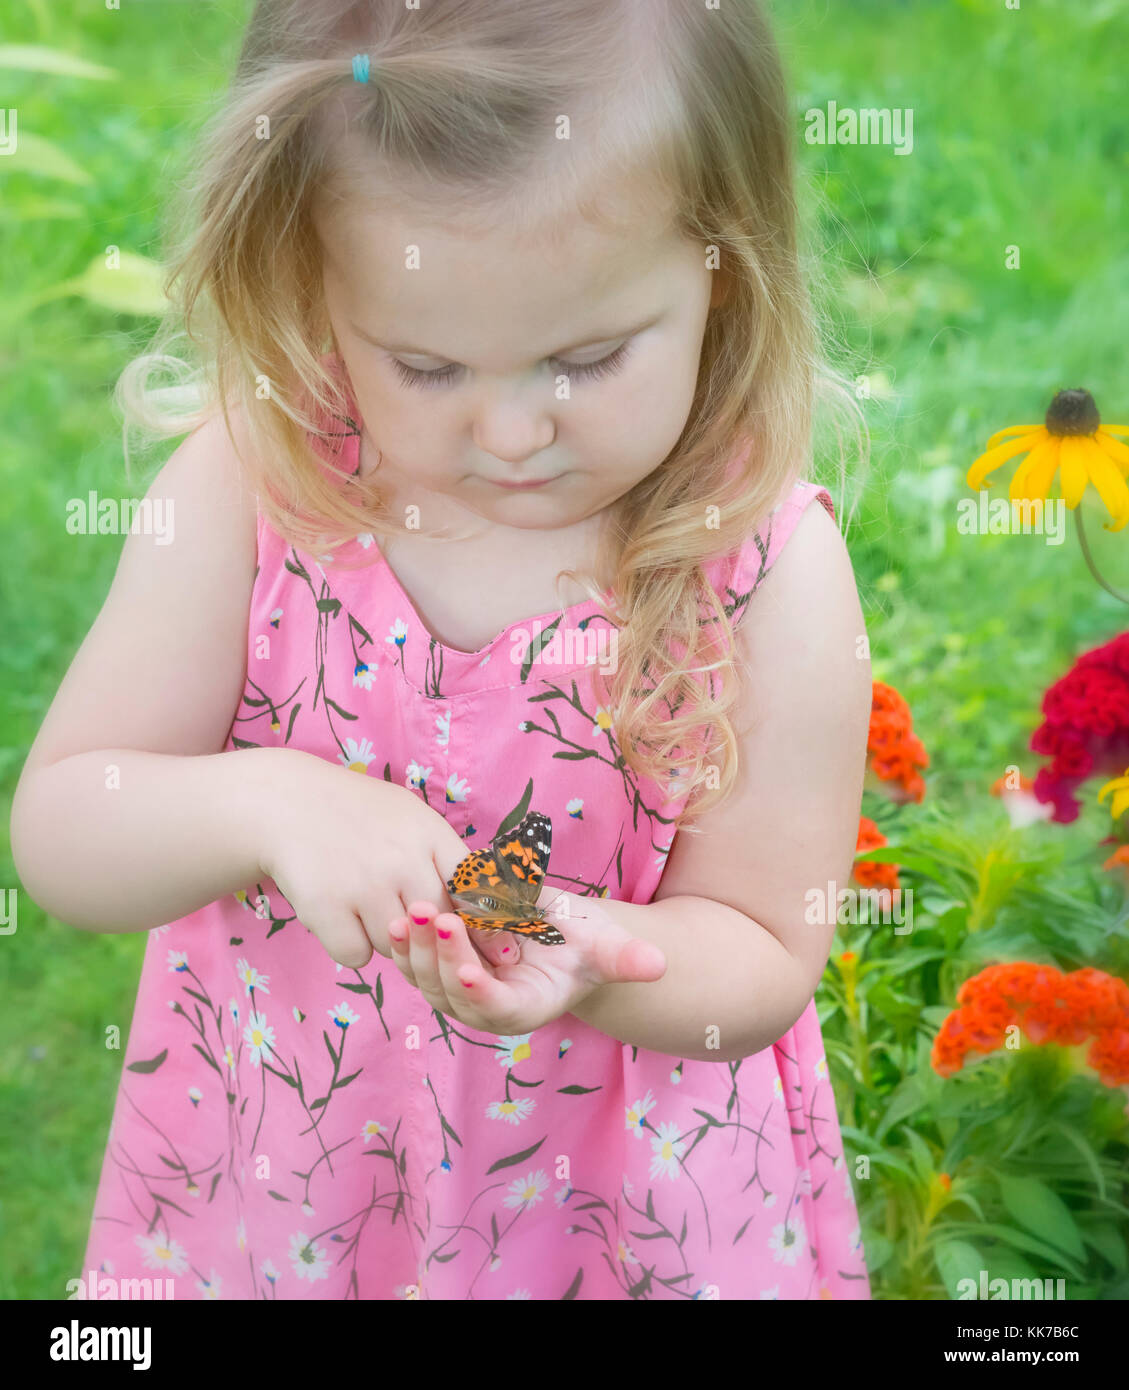 Child in a flower garden holding a painted lady butterfly on her finger Stock Photo